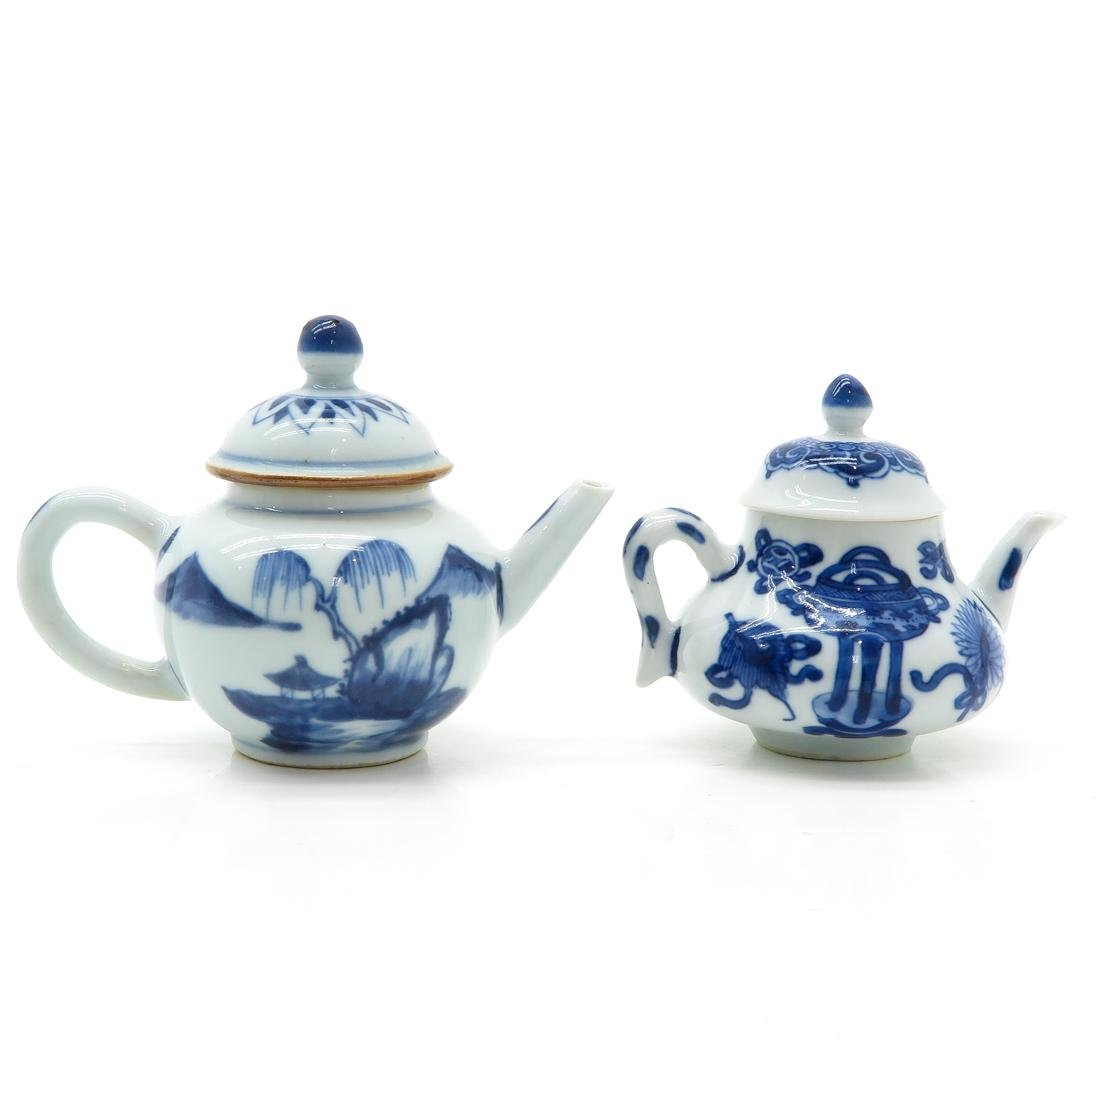 Lot of 2 Small Teapots - 3